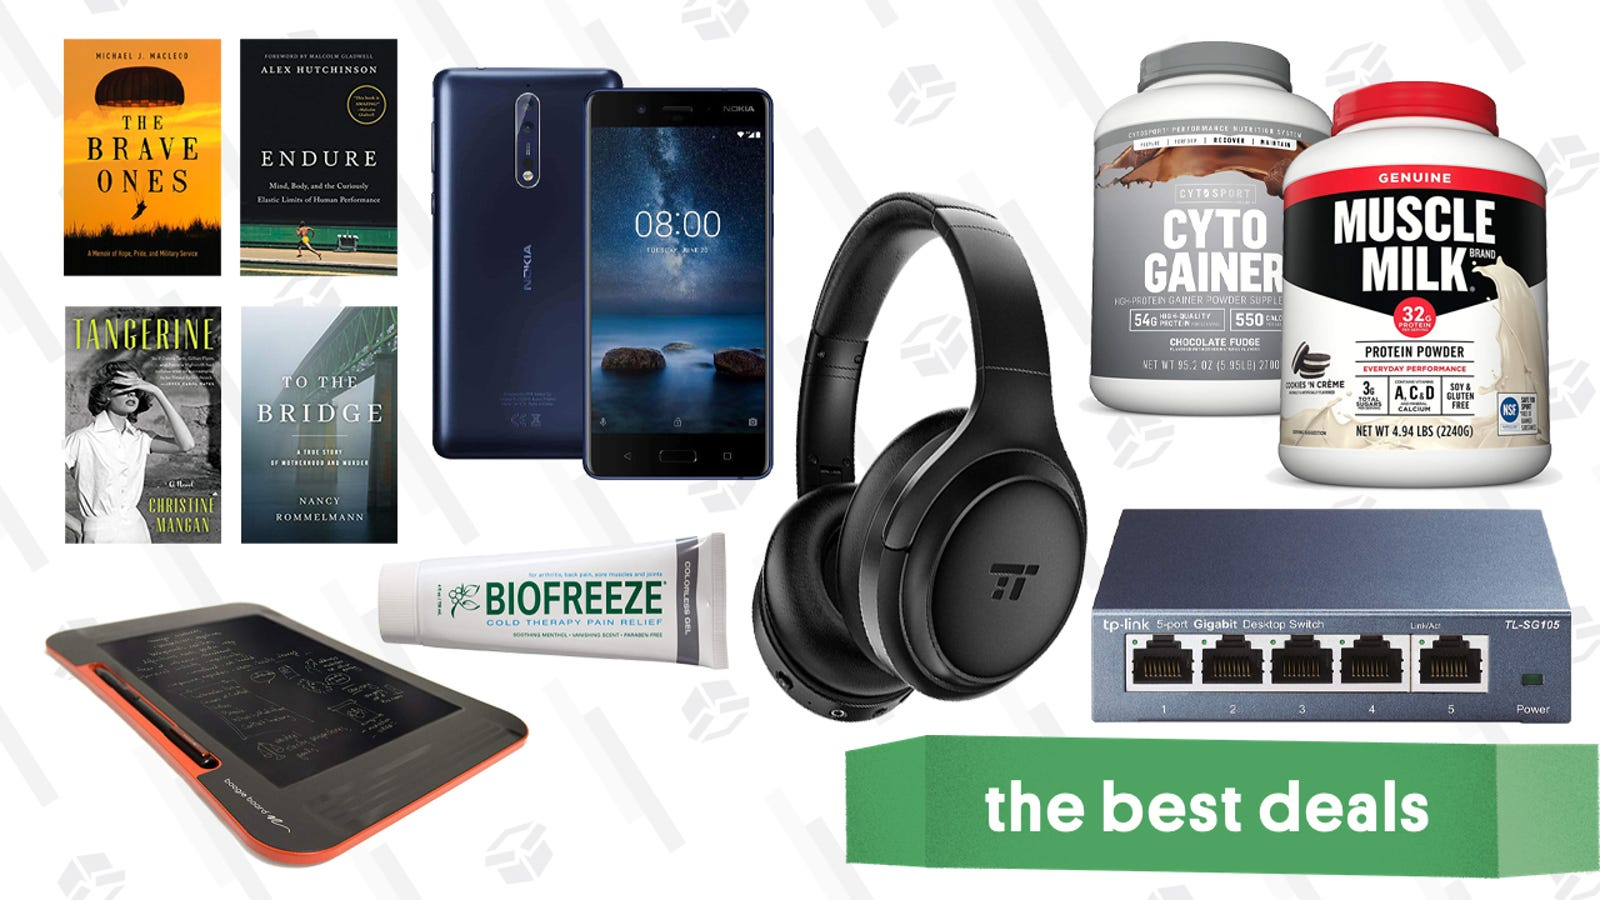 QnA VBage Sunday's Best Deals: Noise-Cancelling Headphones, Muscle Milk, Kindle eBooks, and More